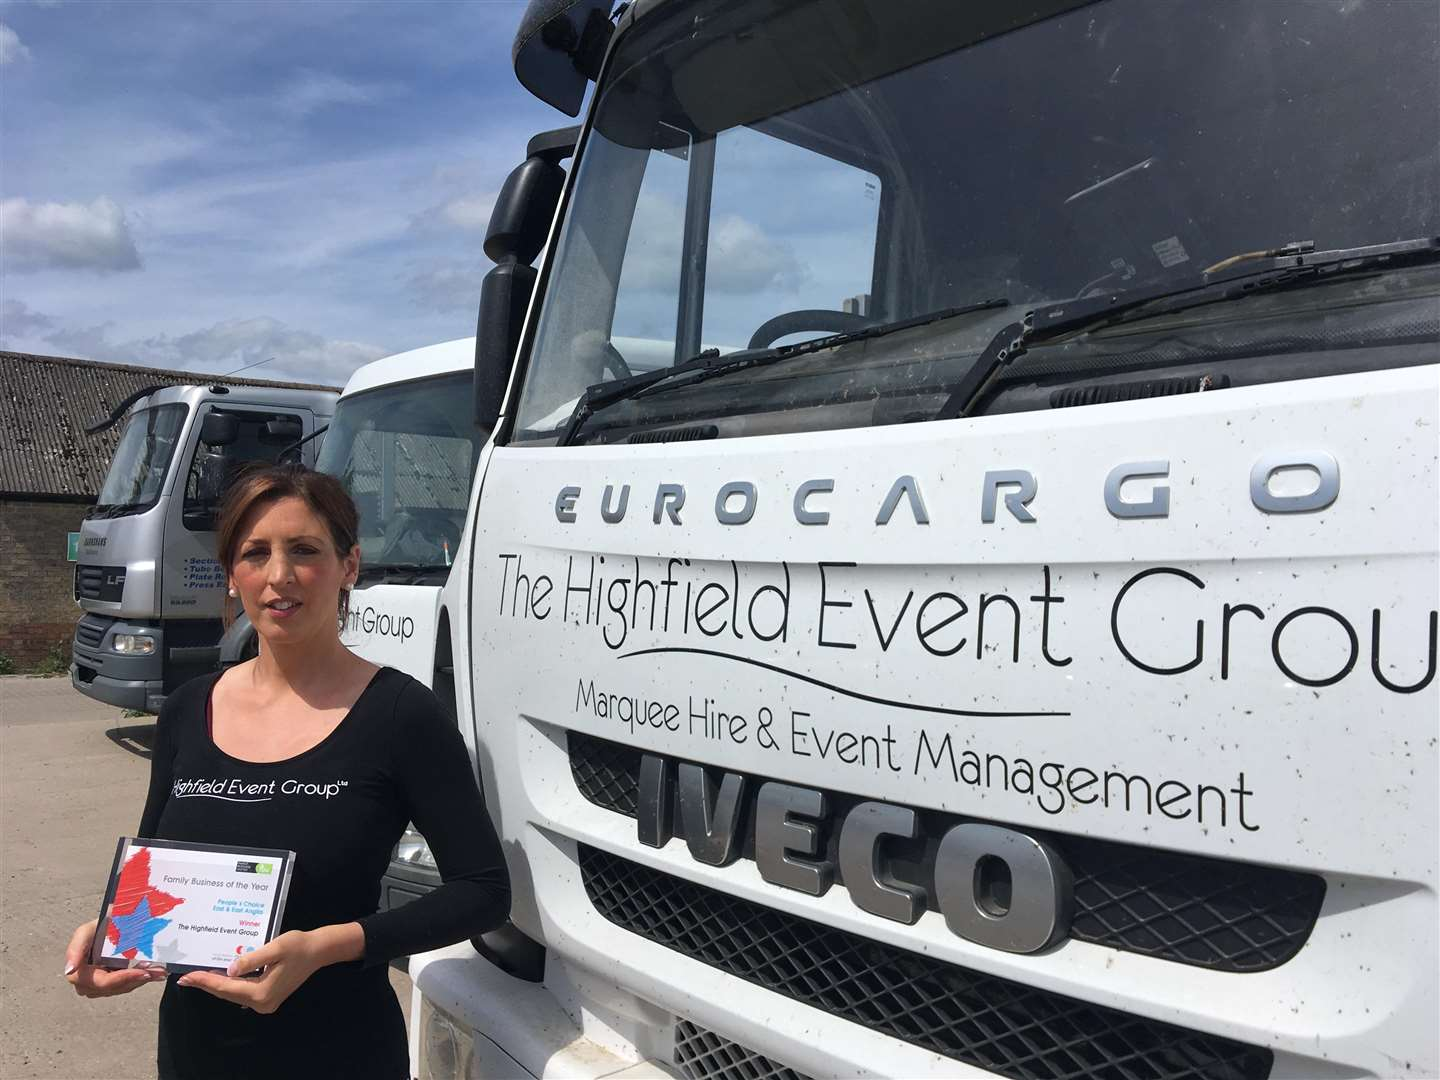 Claire Rigarlsford-Chapman, director of sales and event management at the Highfield Event Group, pictured with their award